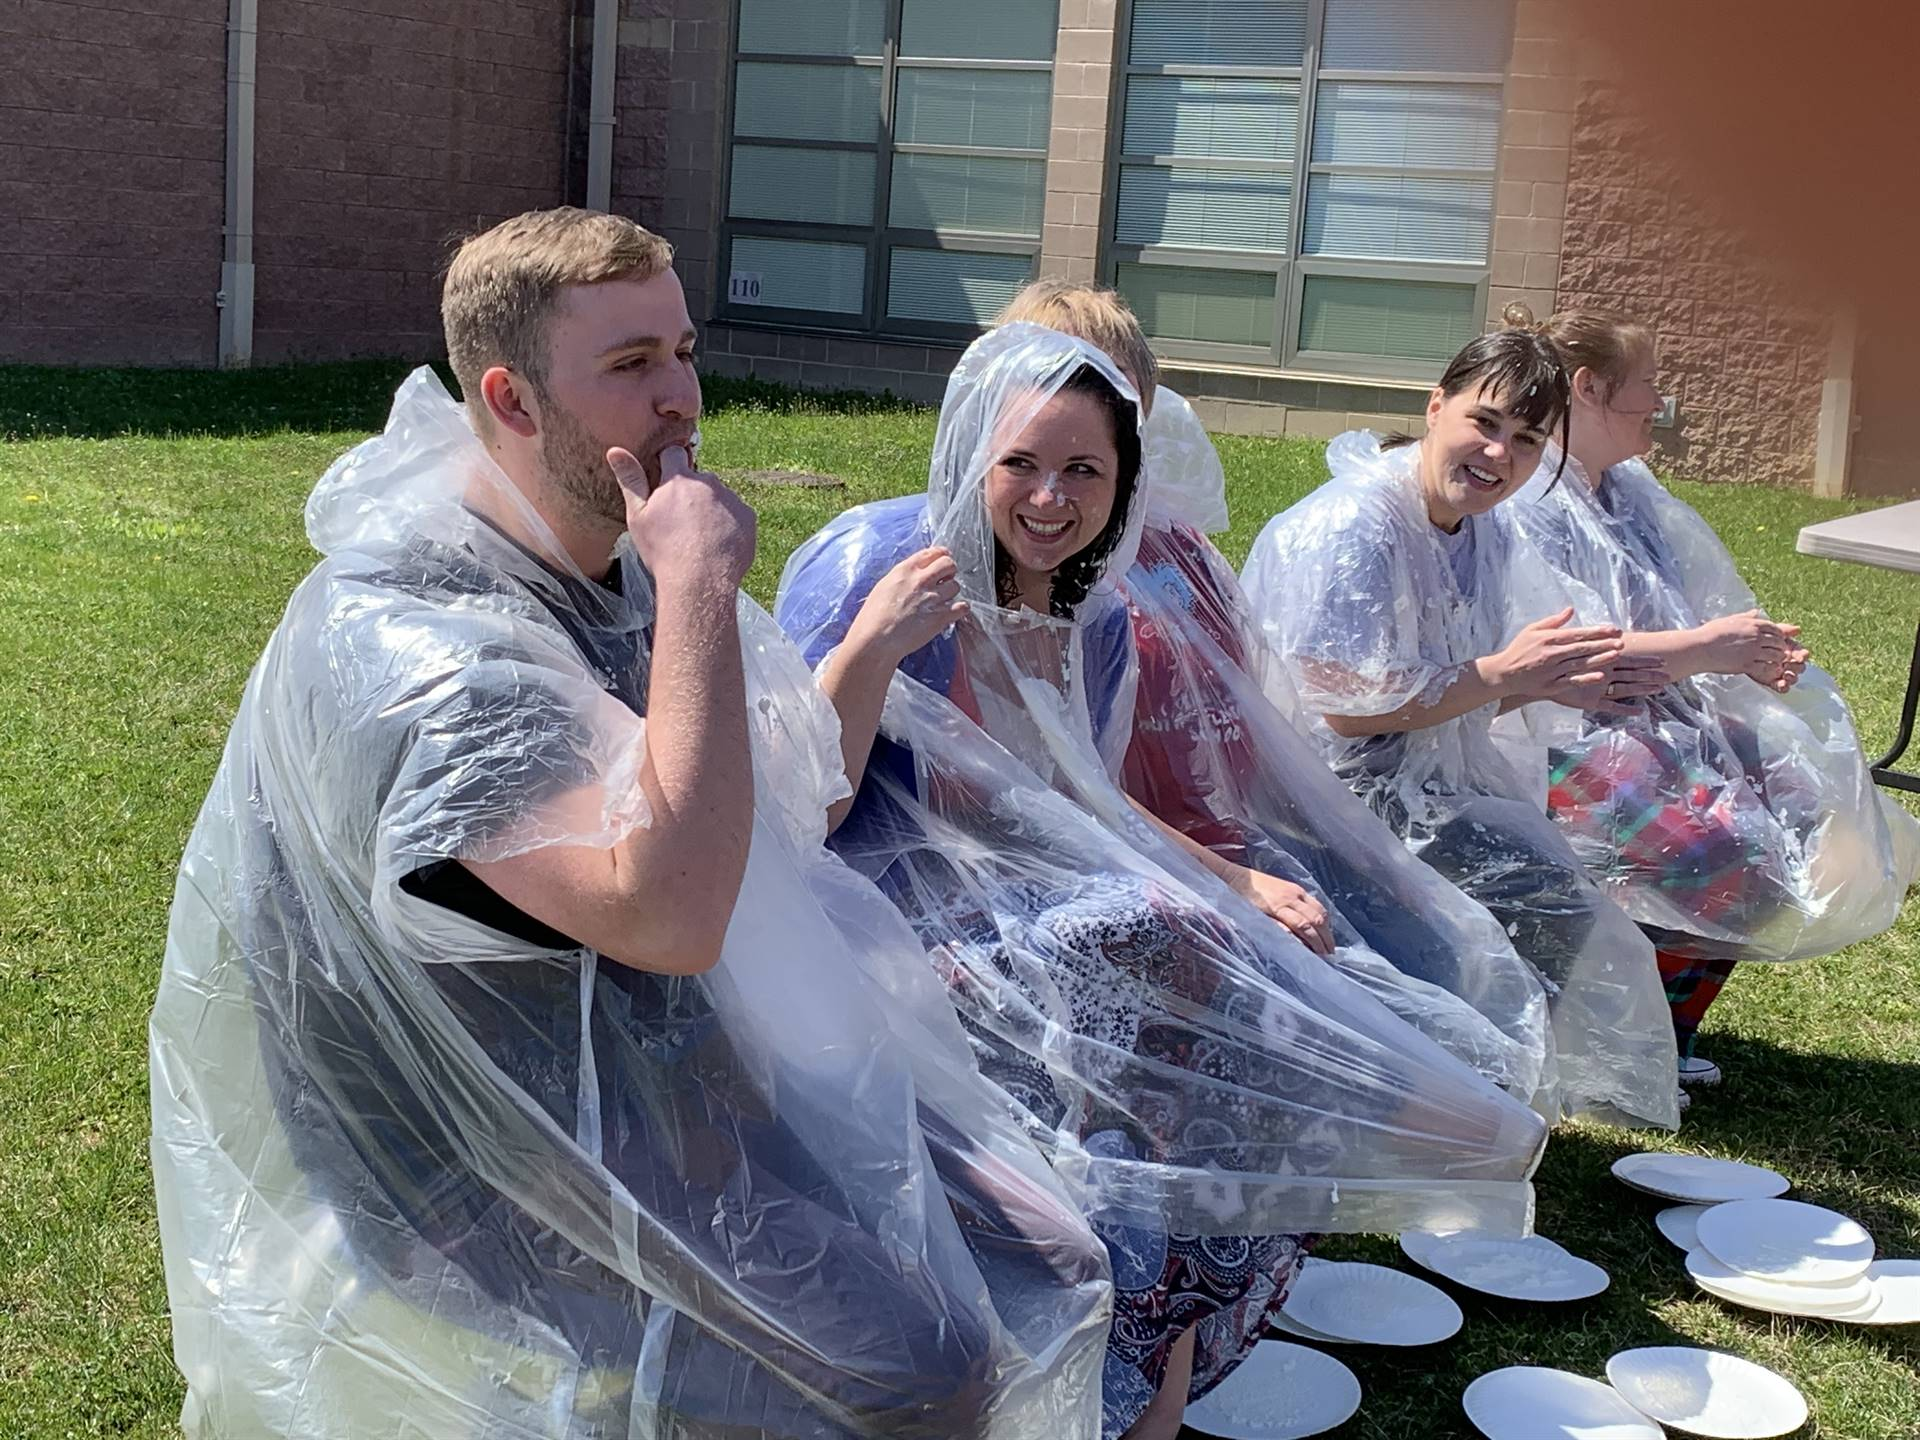 Having a good time on pie in the face day!